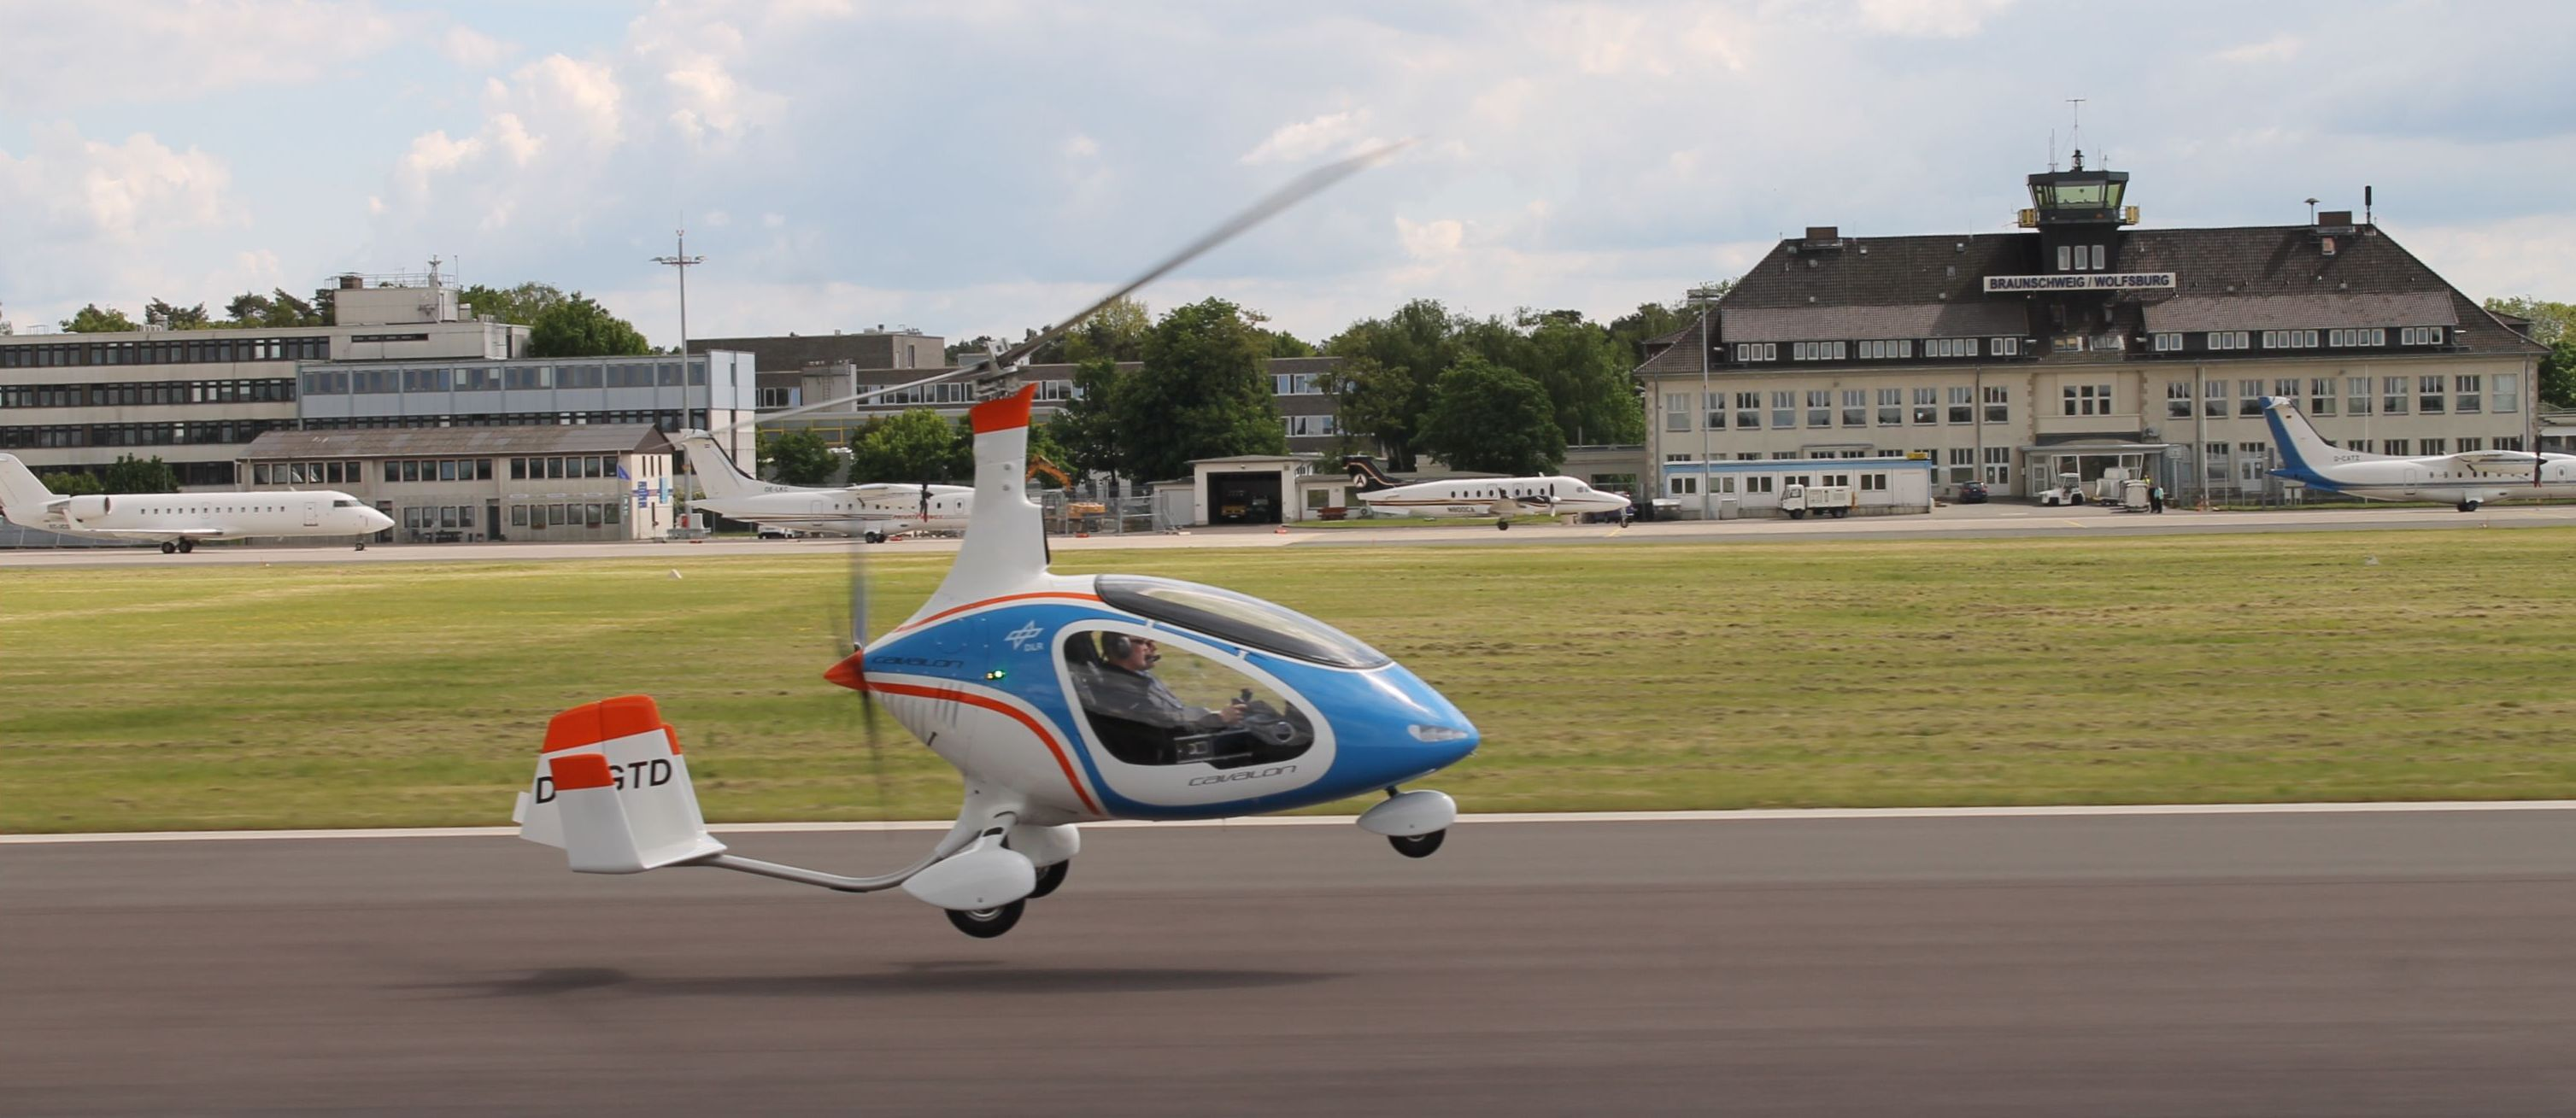 DLR - Institute of Flight Systems - Autogyro / Gyrocopter